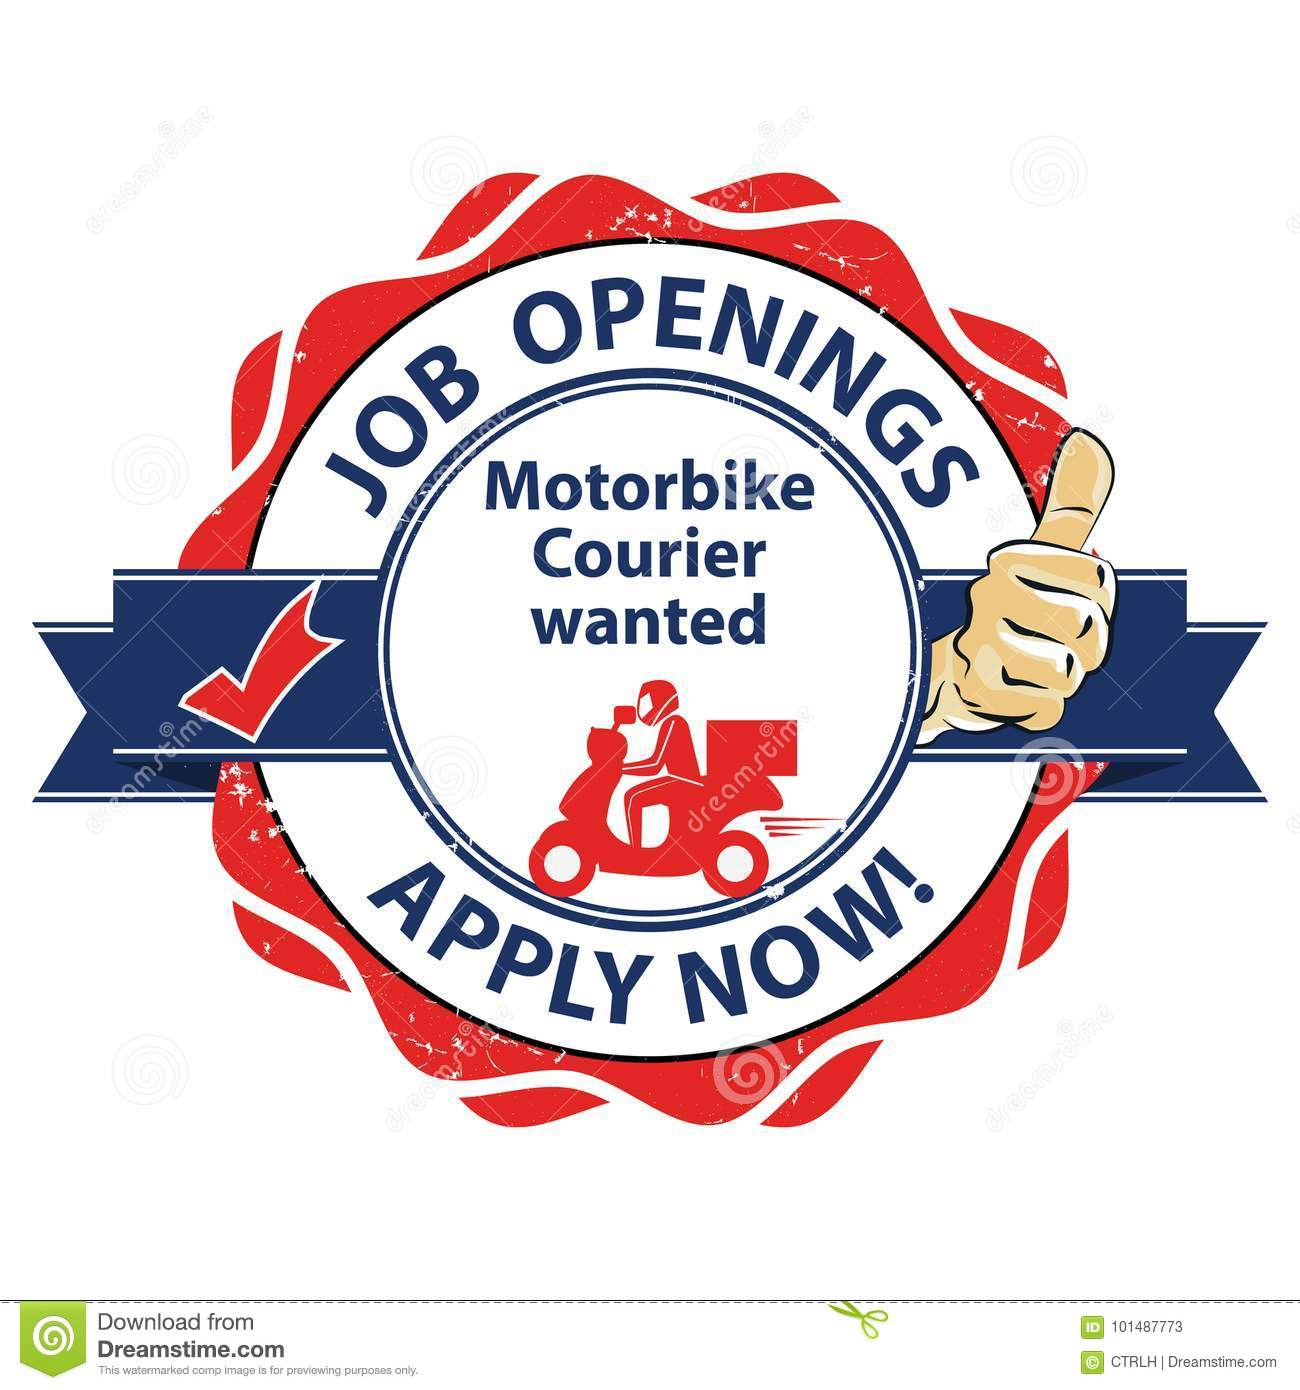 We Are Hiring Motorbike Courier - Job Openings Stock Vector